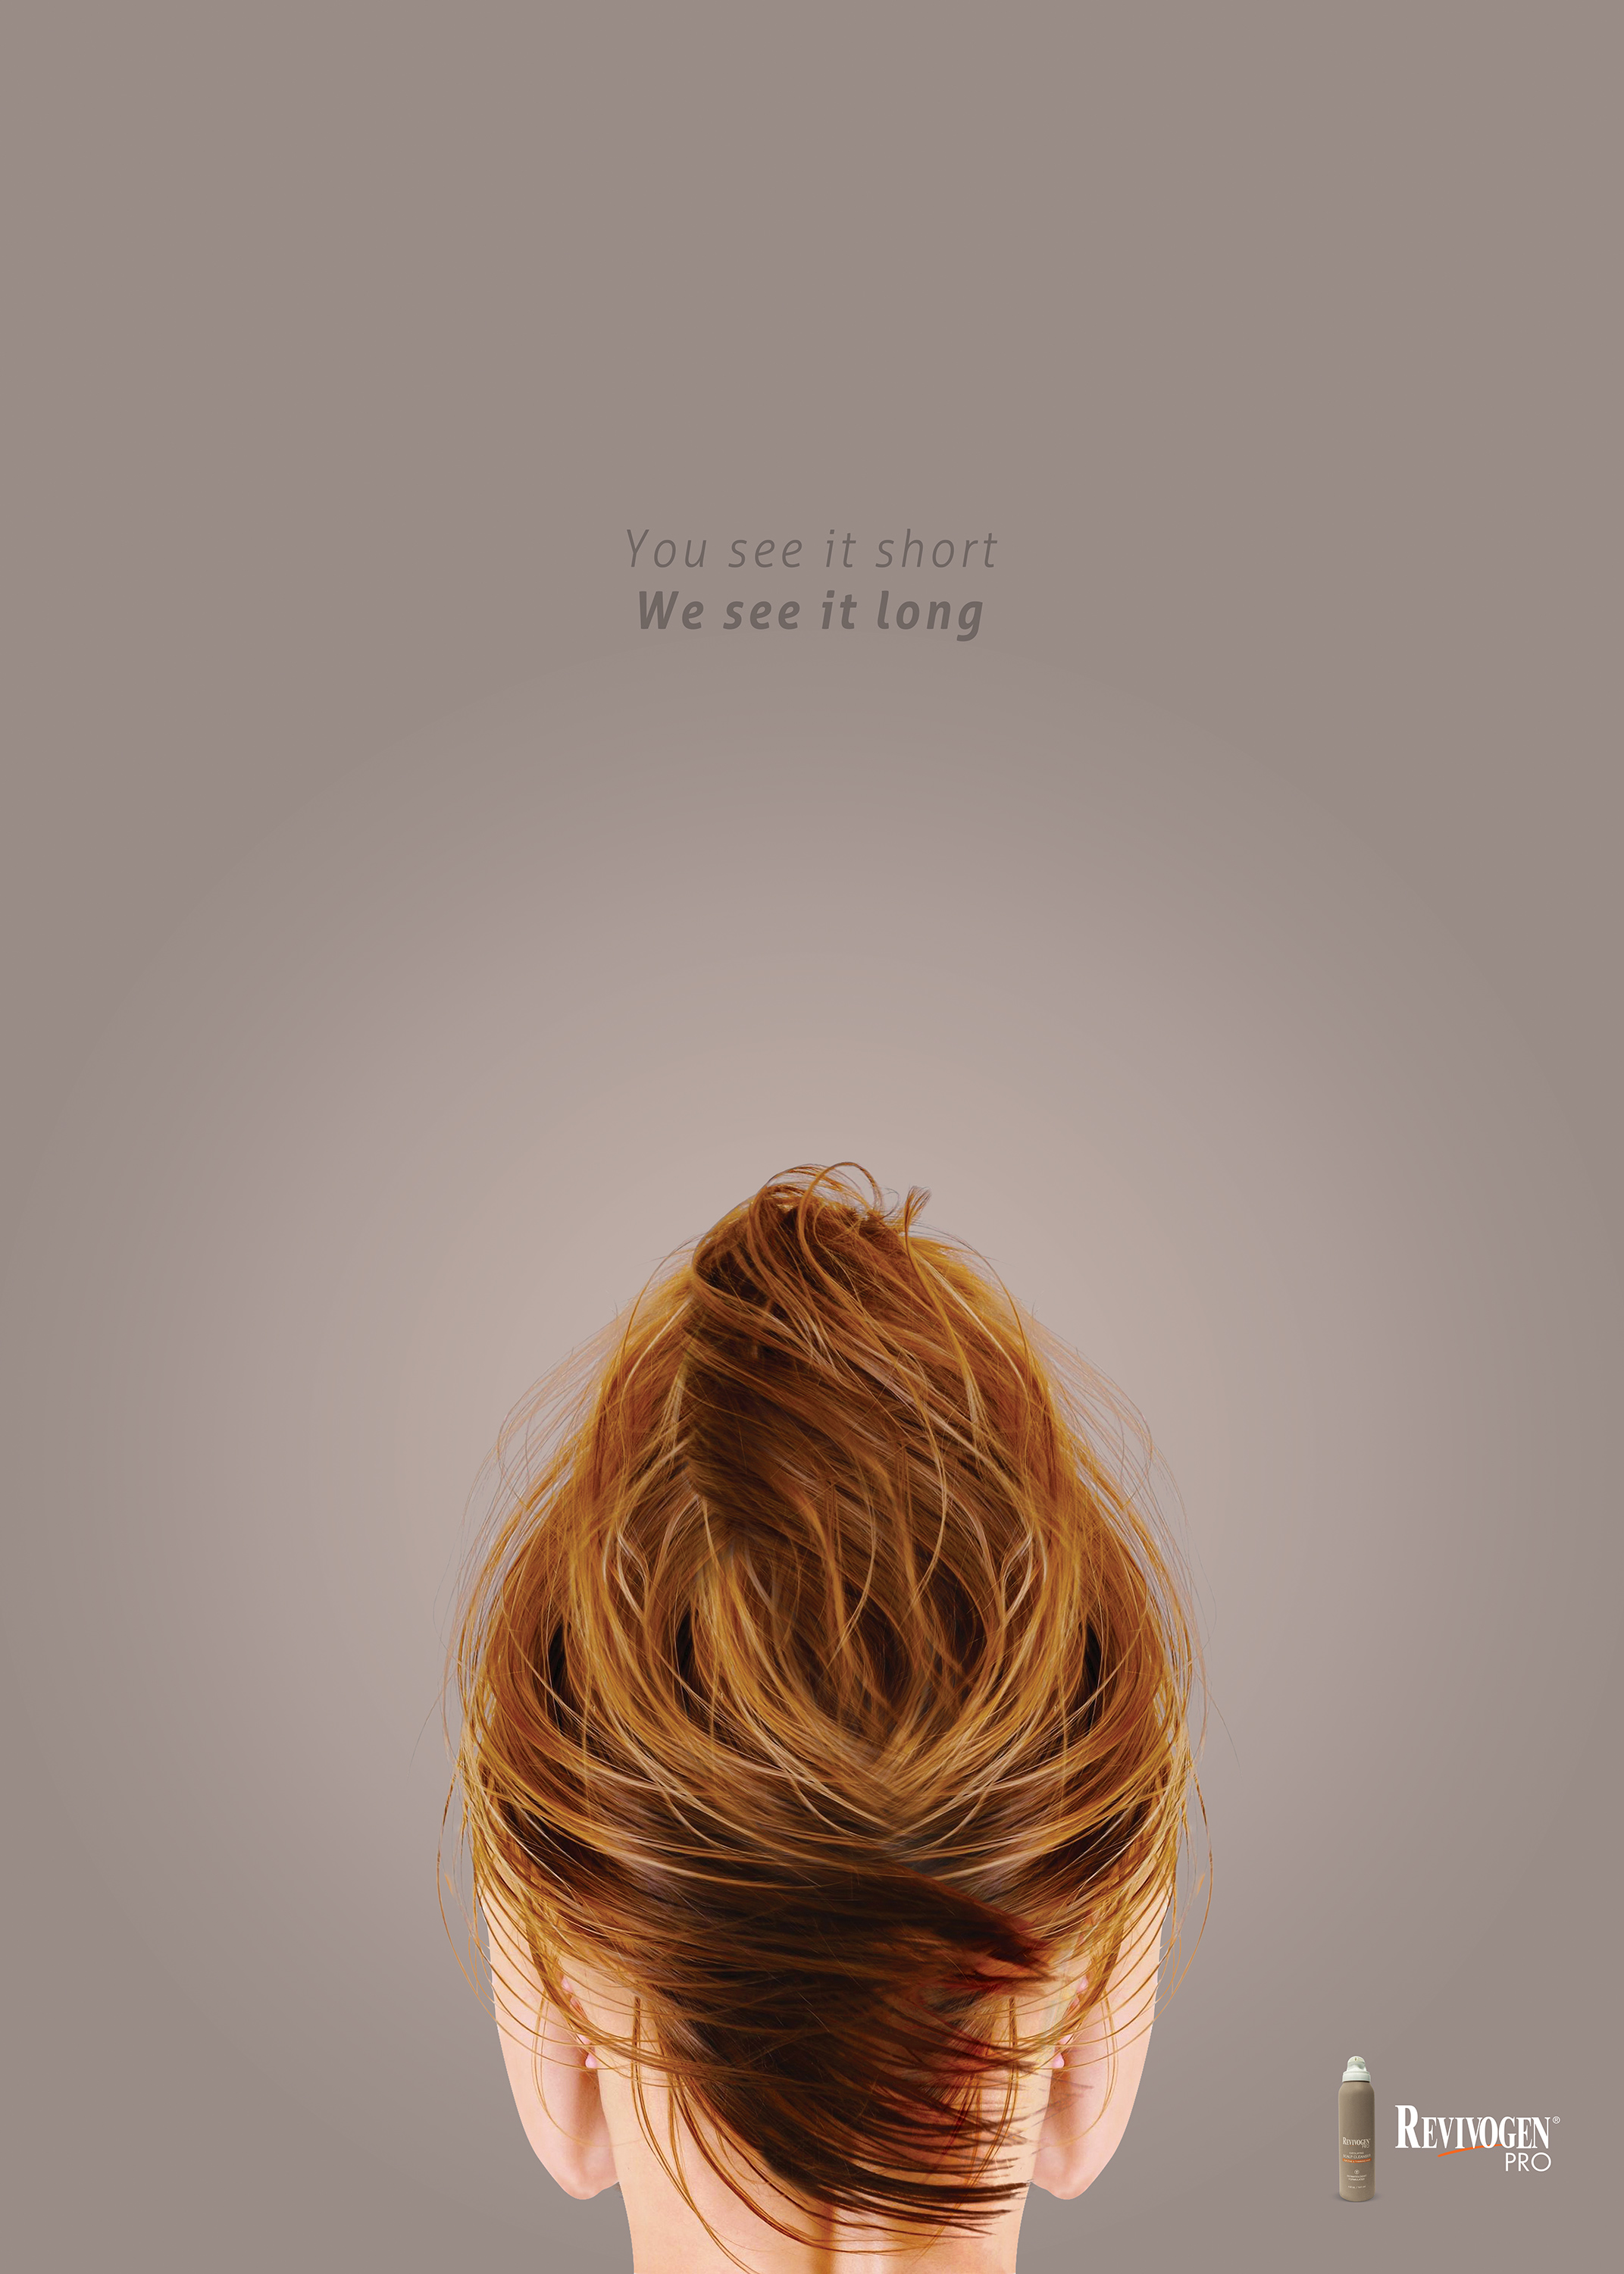 Revivogen Print Advert By Rabhole: Hair care | Ads of the ...